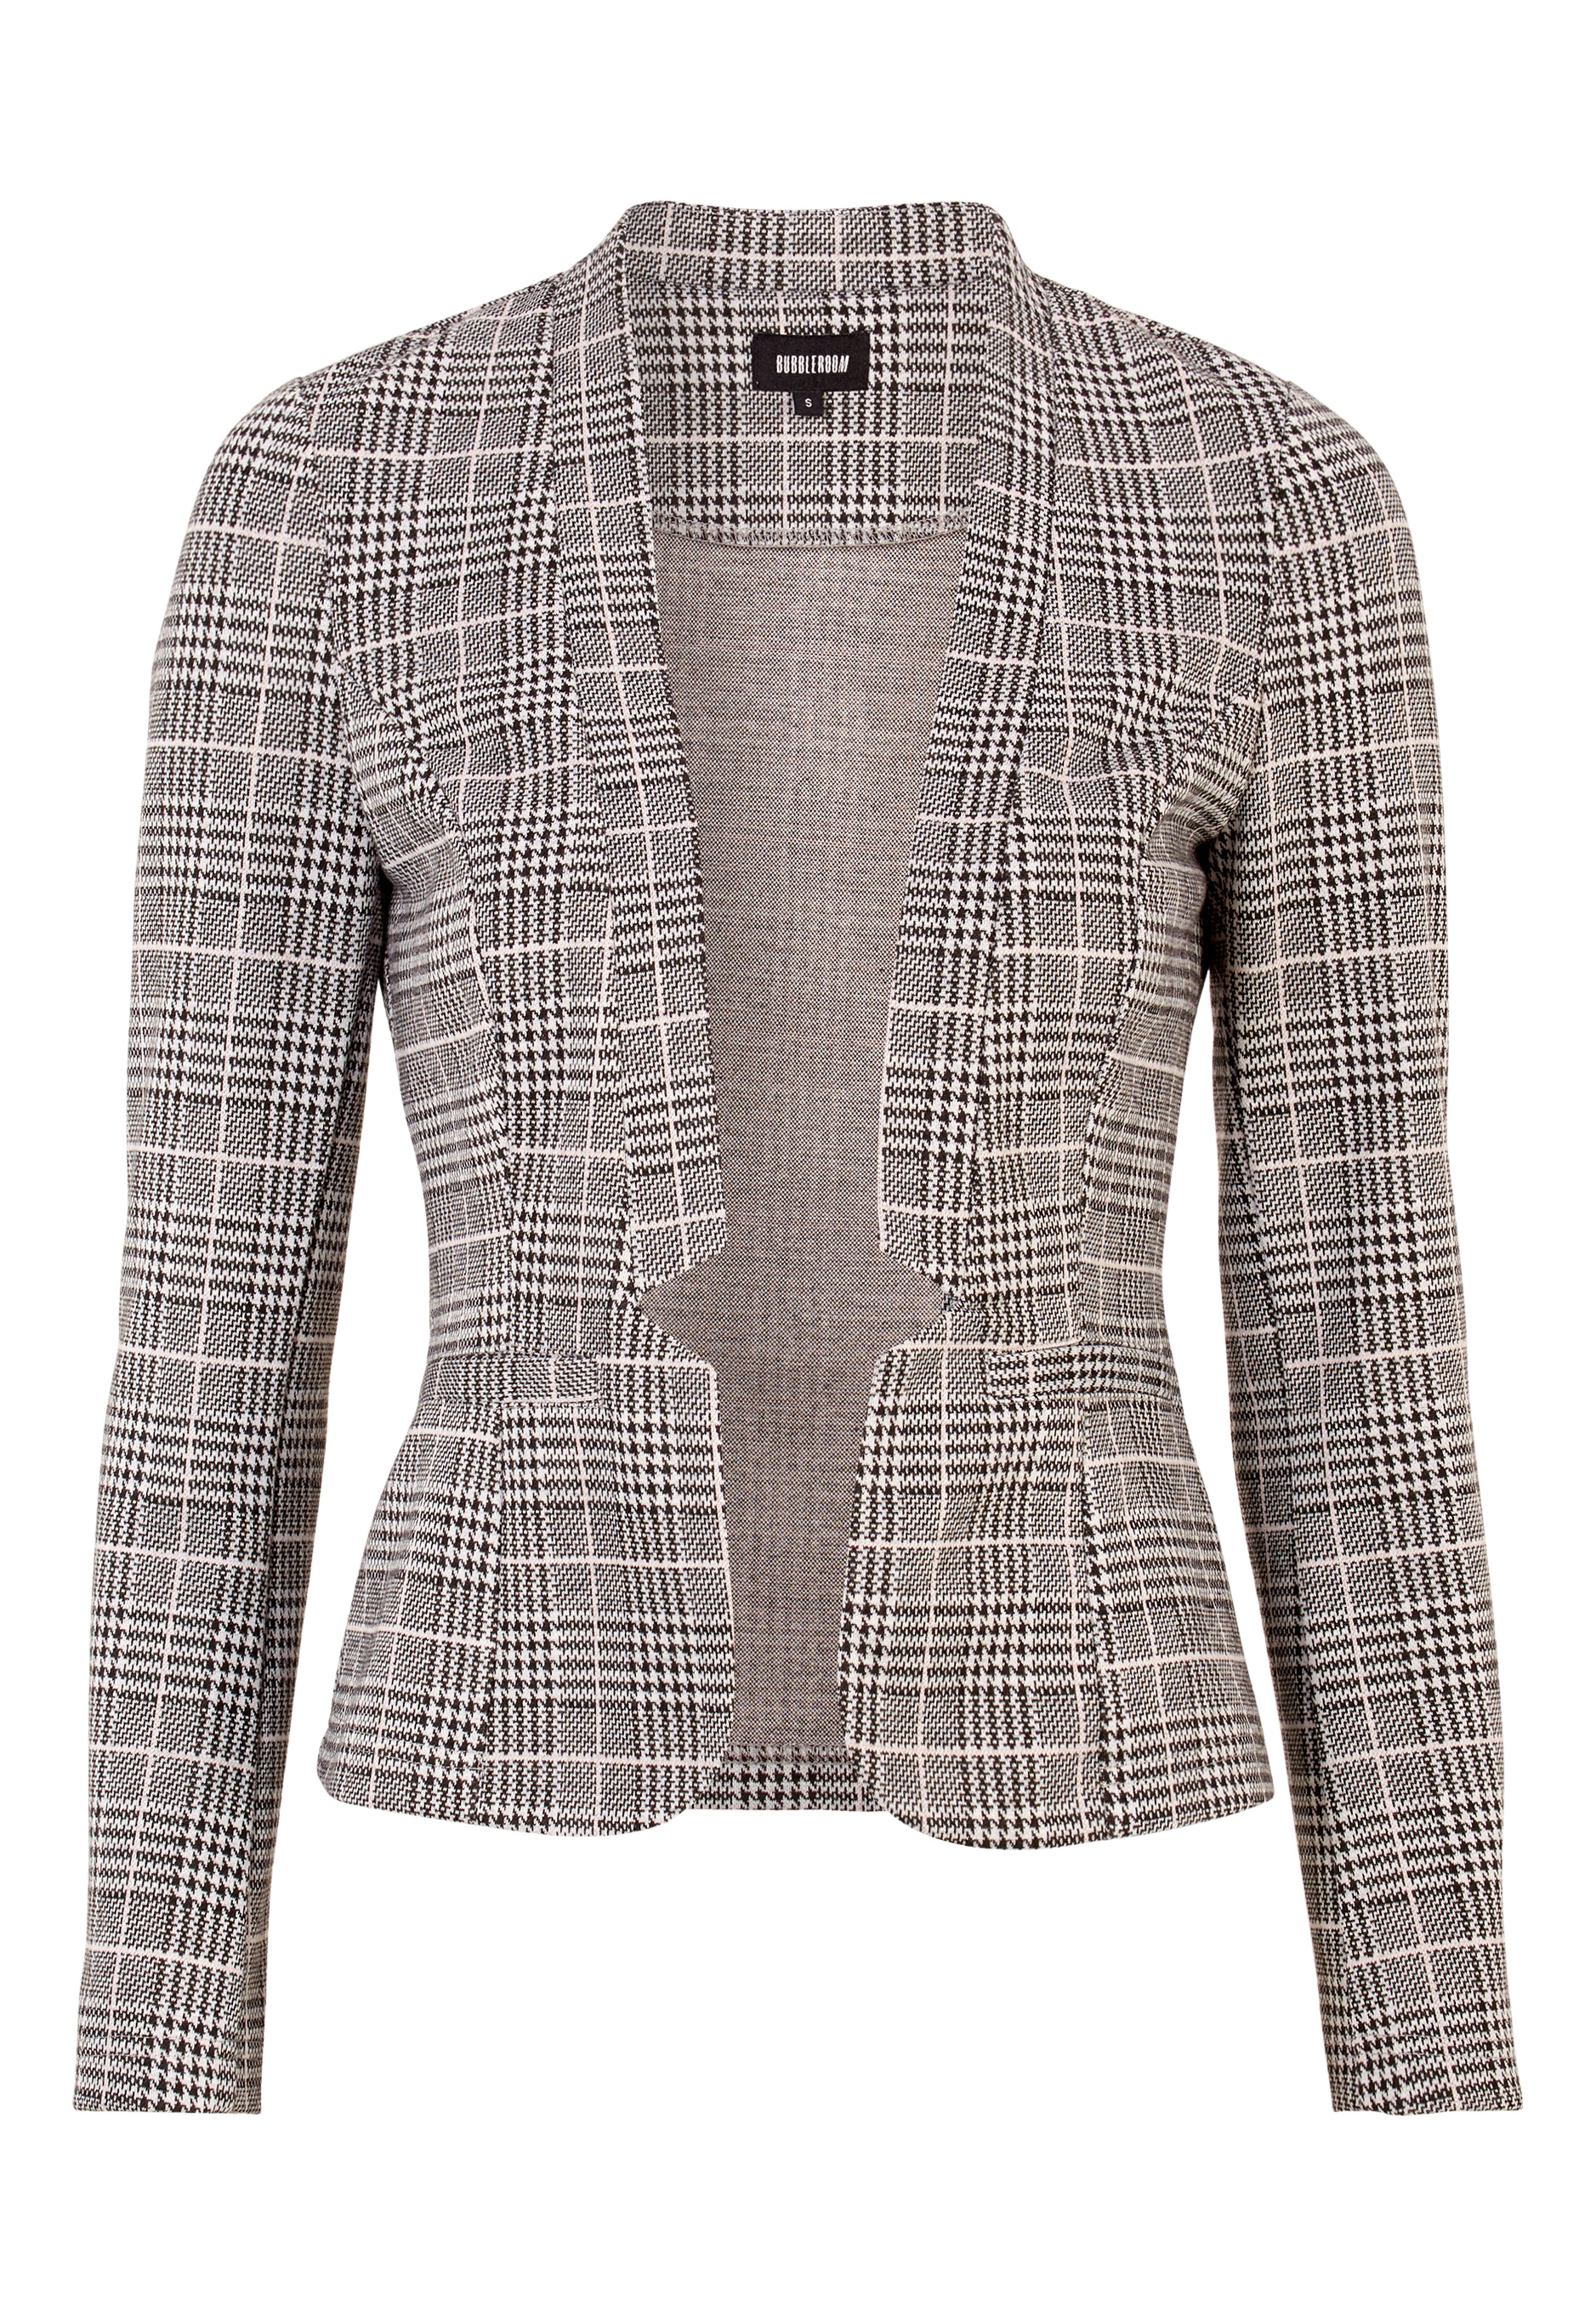 BUBBLEROOM Brienne blazer Grey   Pink   Checked - Bubbleroom 324d4ea884fa3